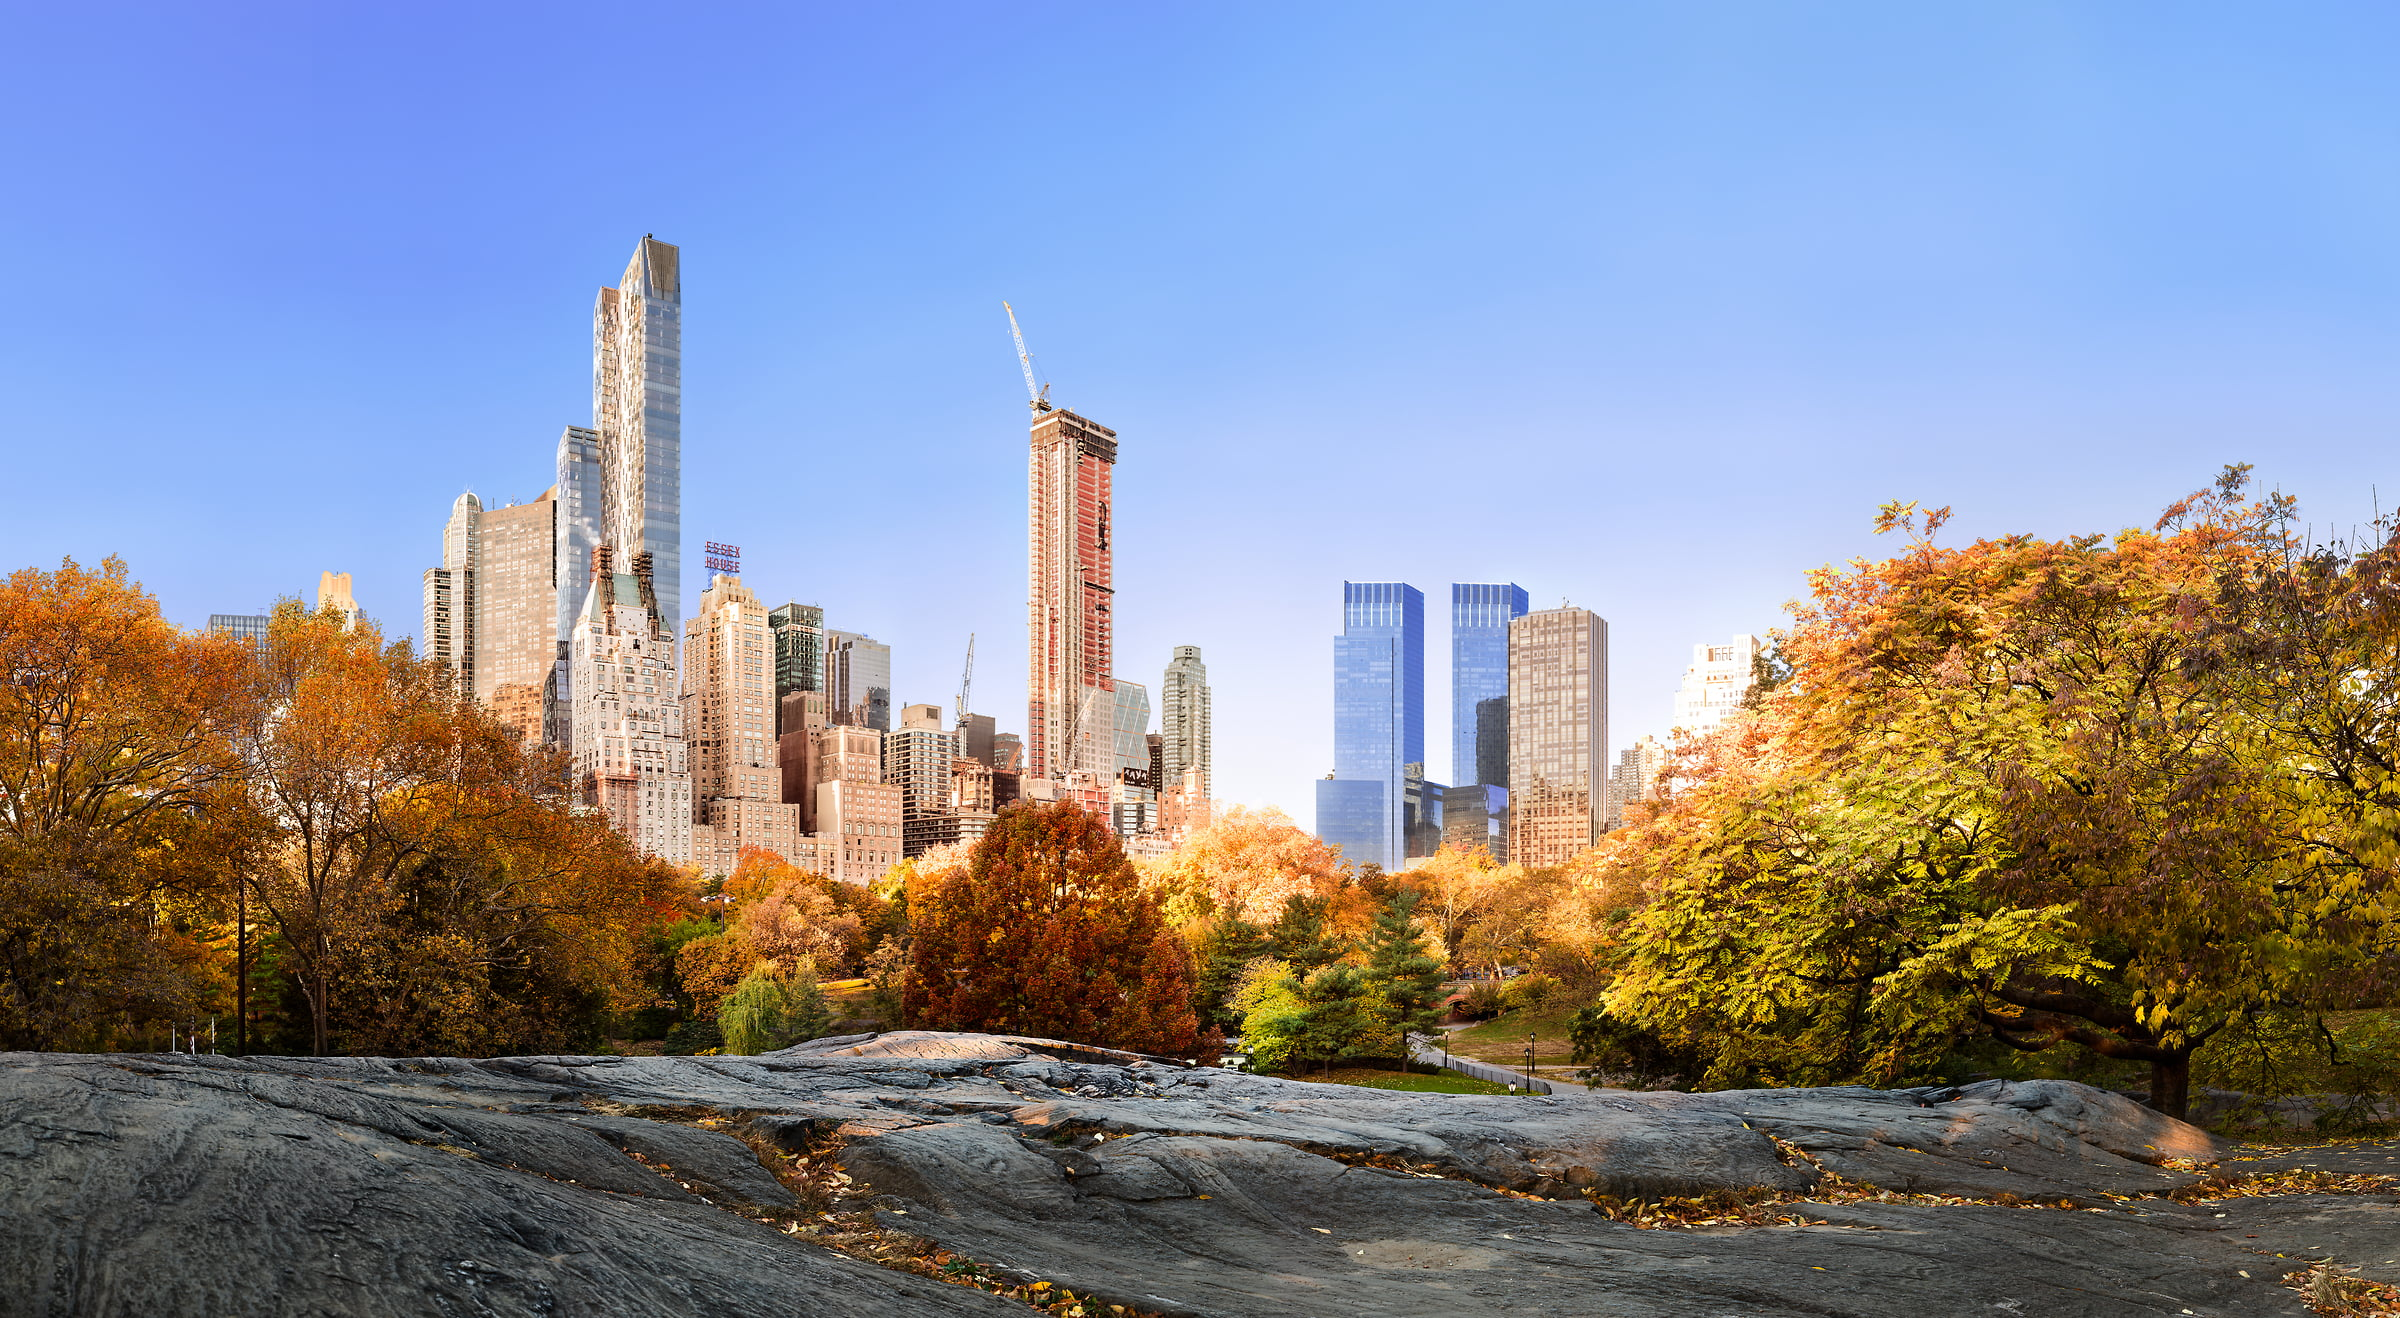 2,008 megapixels! A very high definition large format VAST photo print of autumn trees and skyline in Central Park, New York City at sunrise; created by Dan Piech